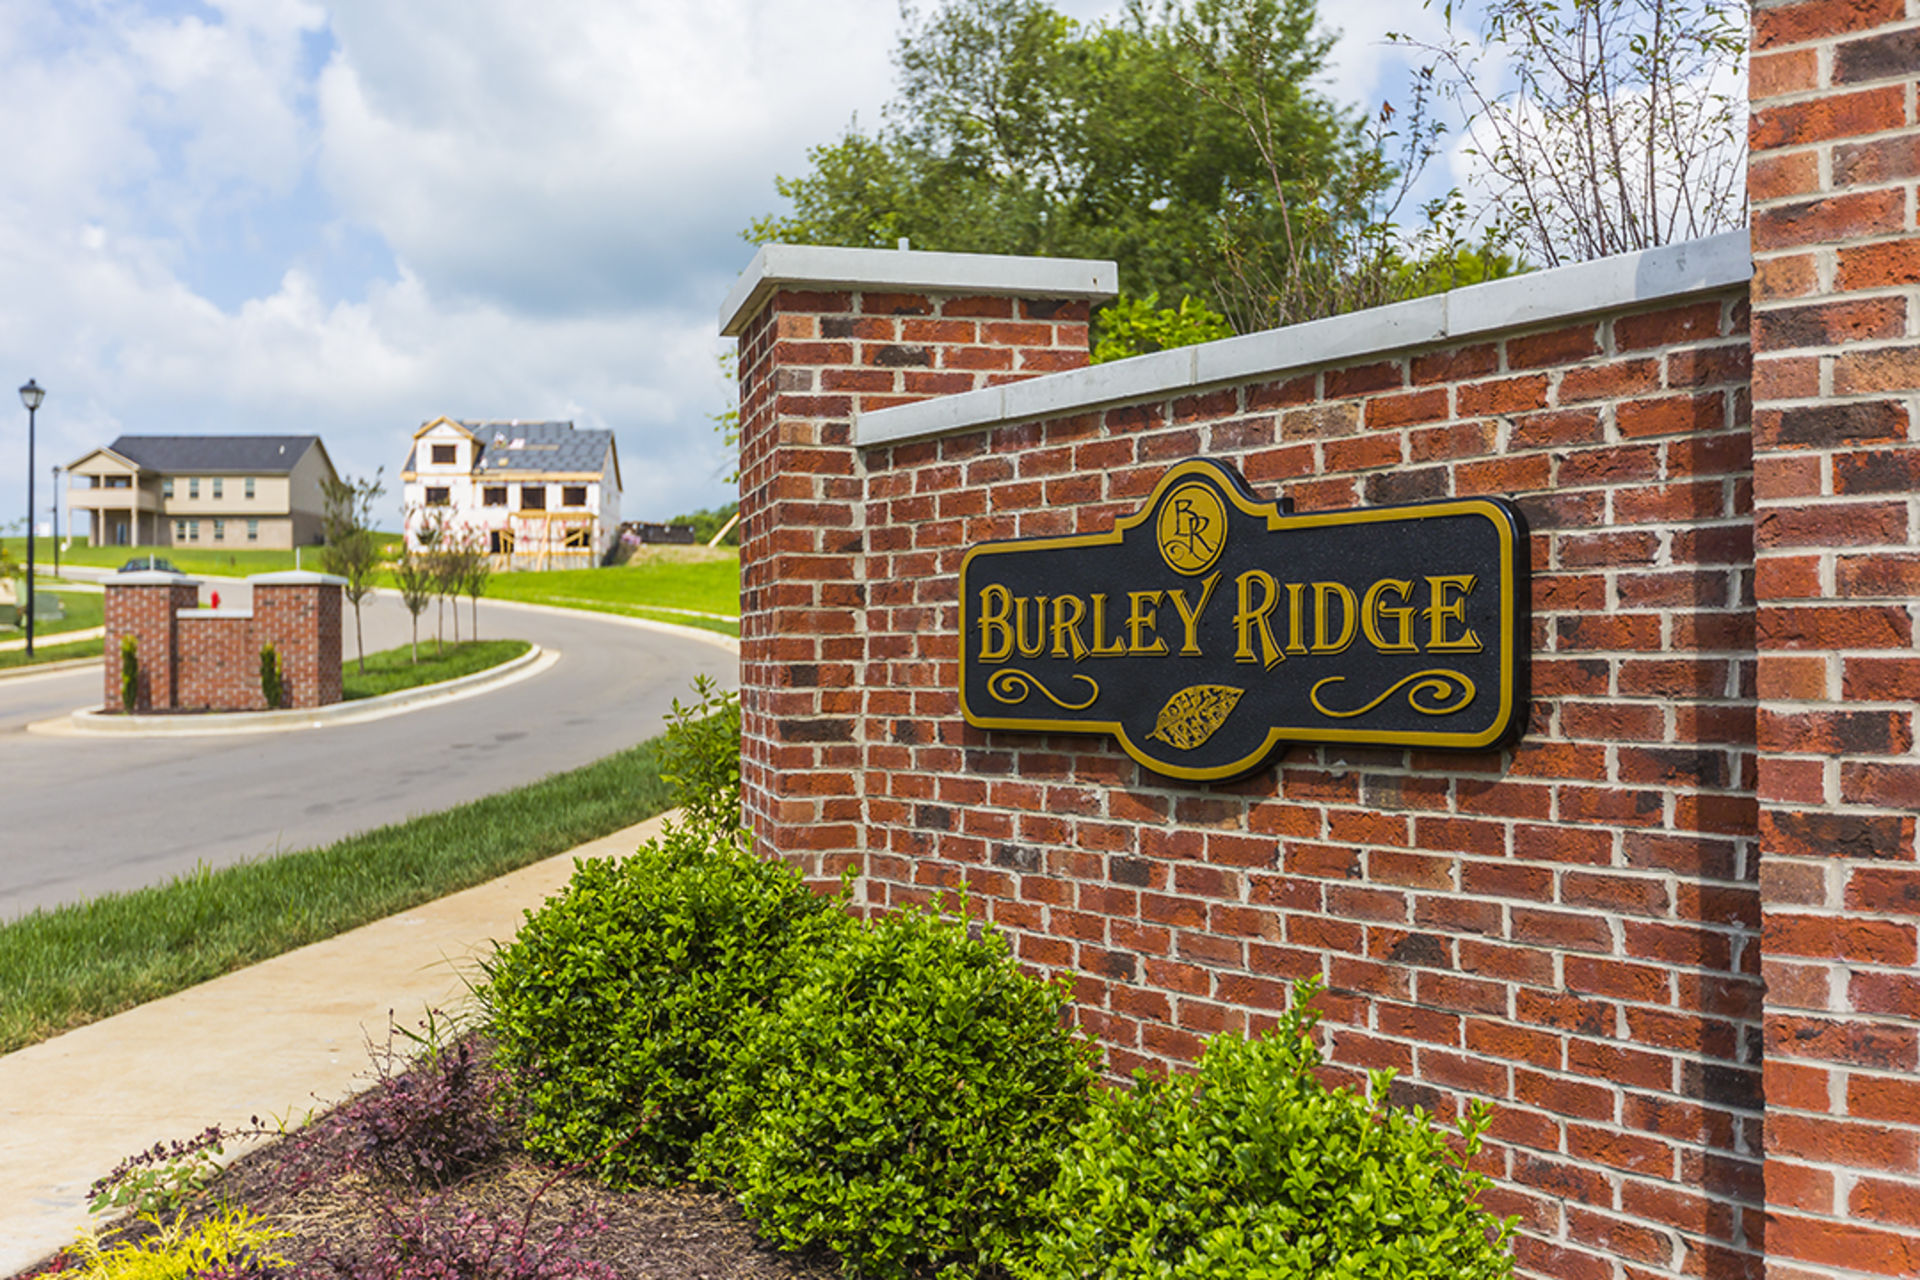 Build Your Dream Home in Burley Ridge in Nicholasville!